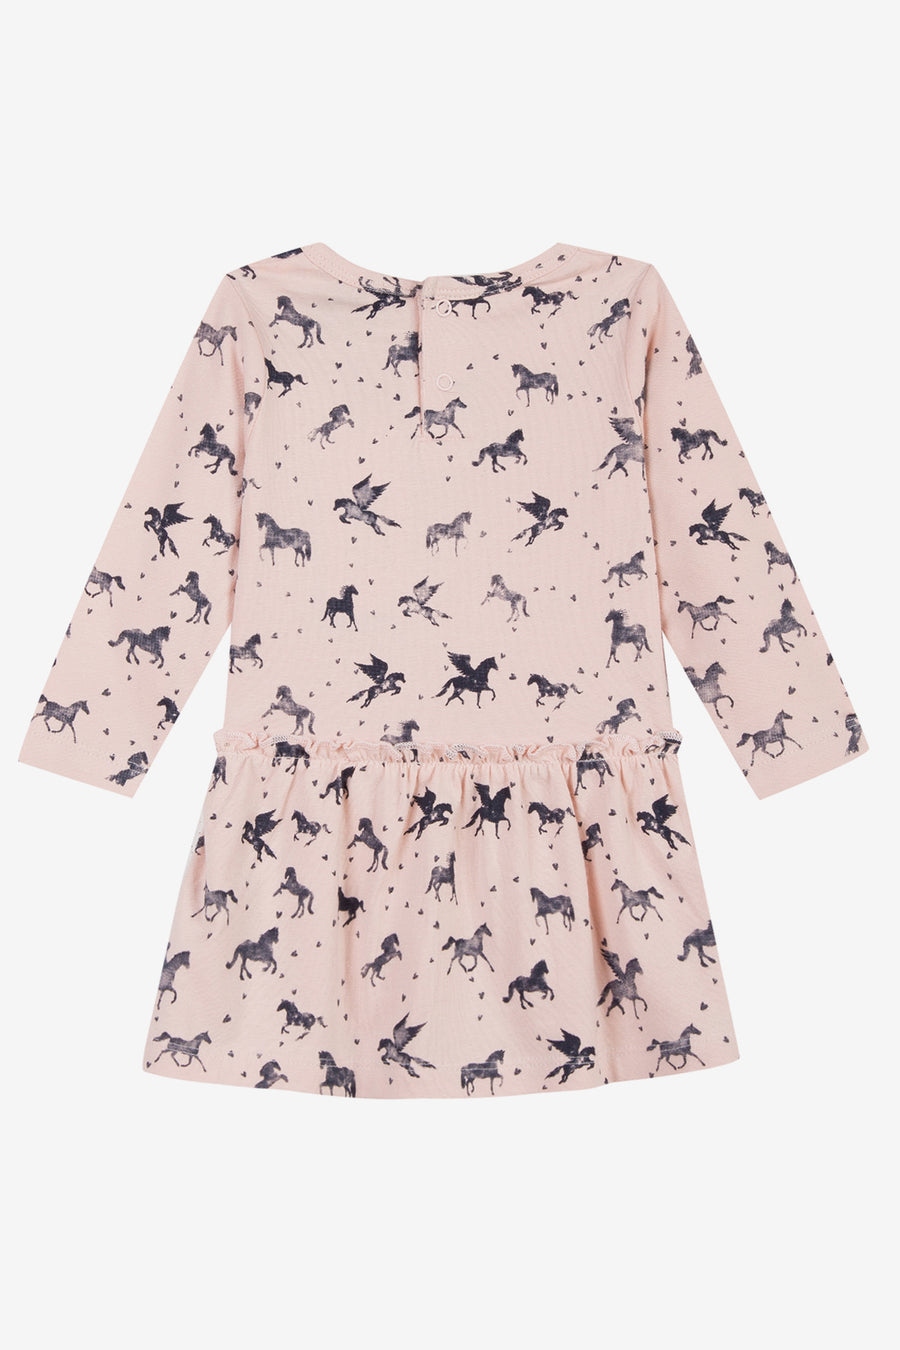 3pommes Pink Horse Print Dress